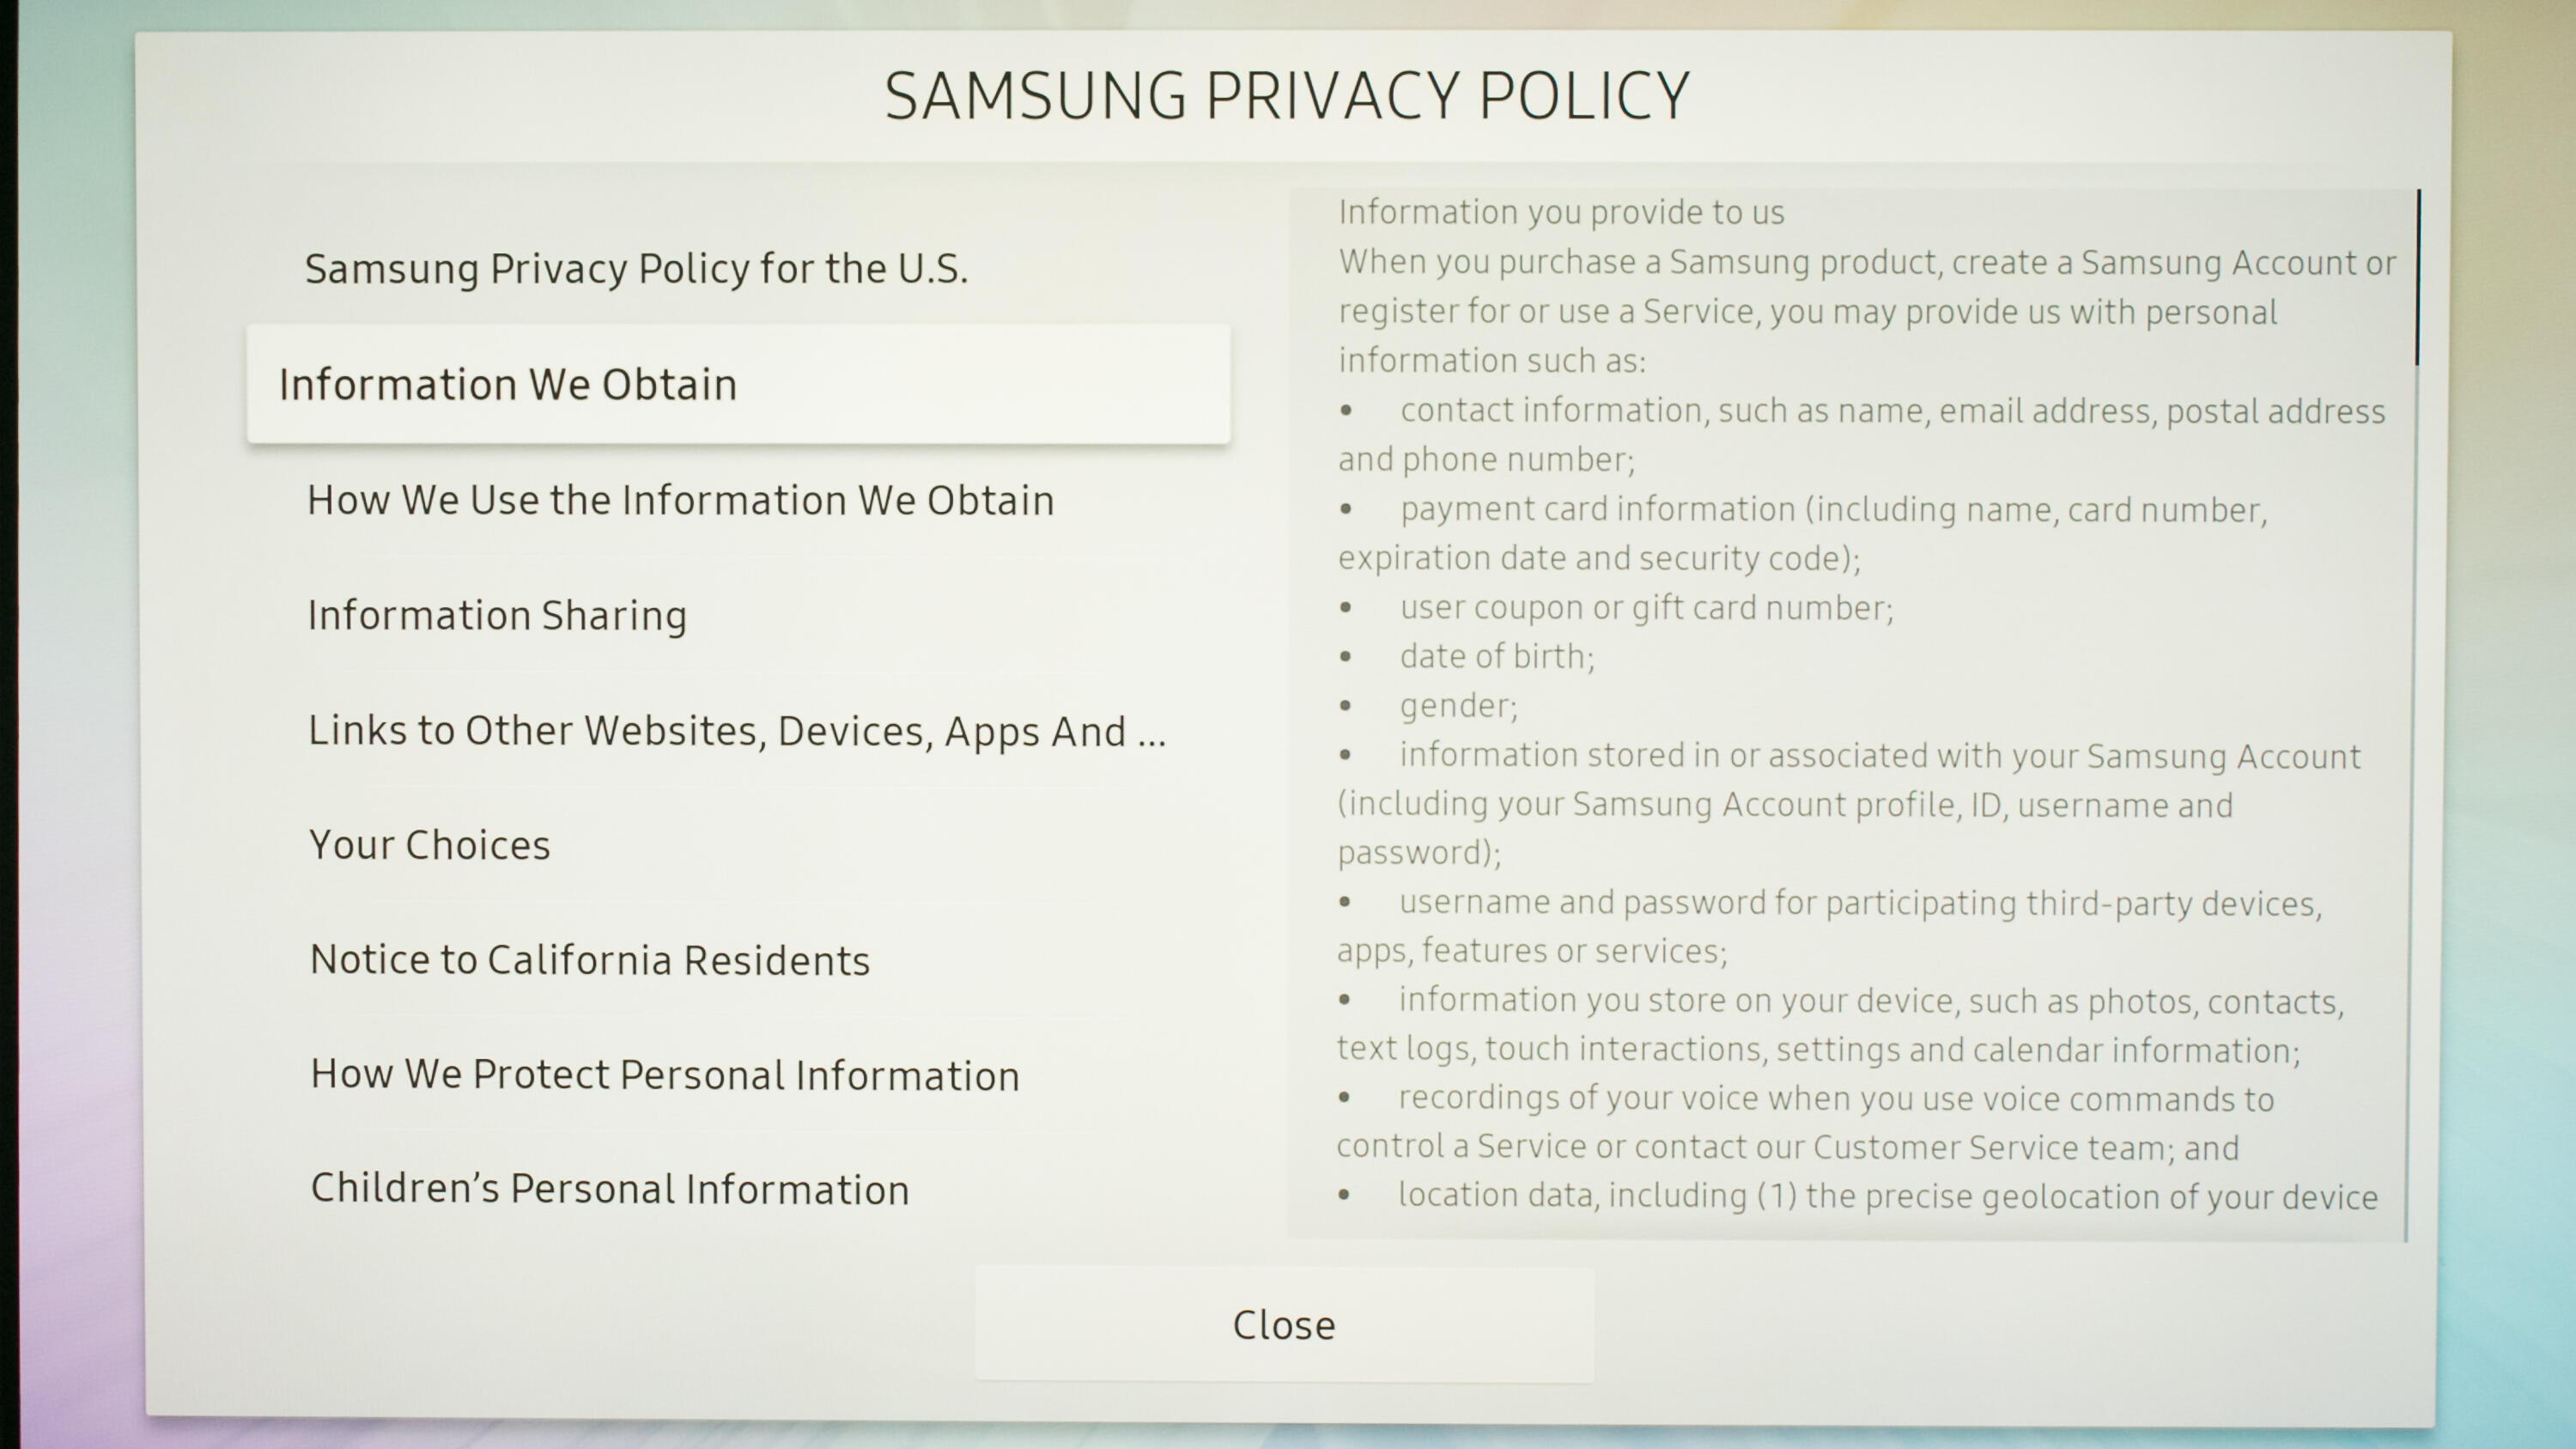 08-privacy-policy-user-agreements-tvs-2019-cnet